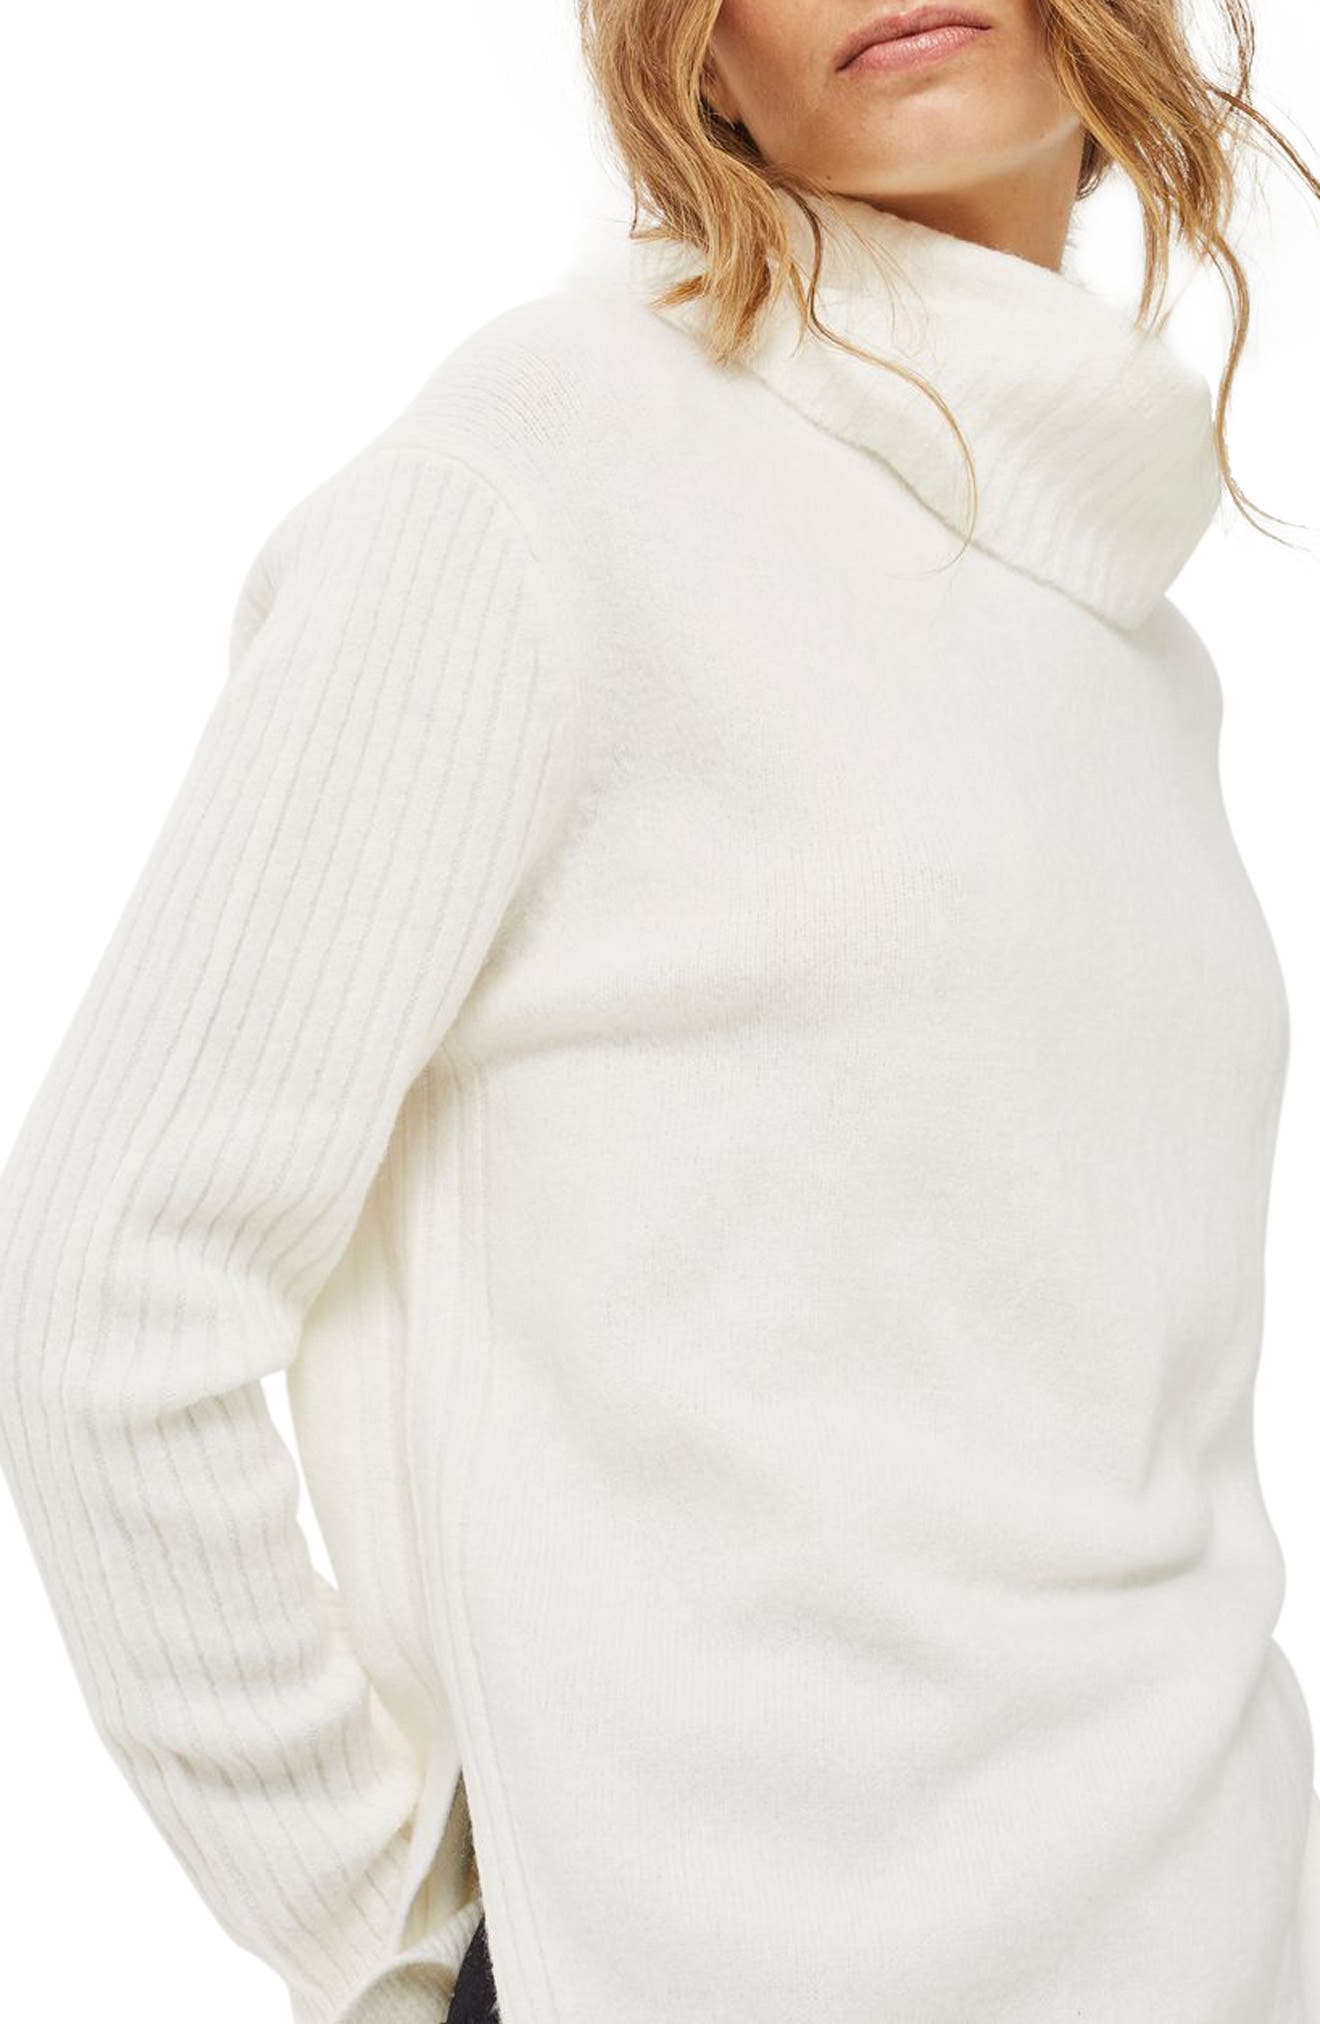 Oversize Turtleneck Sweater,                             Alternate thumbnail 6, color,